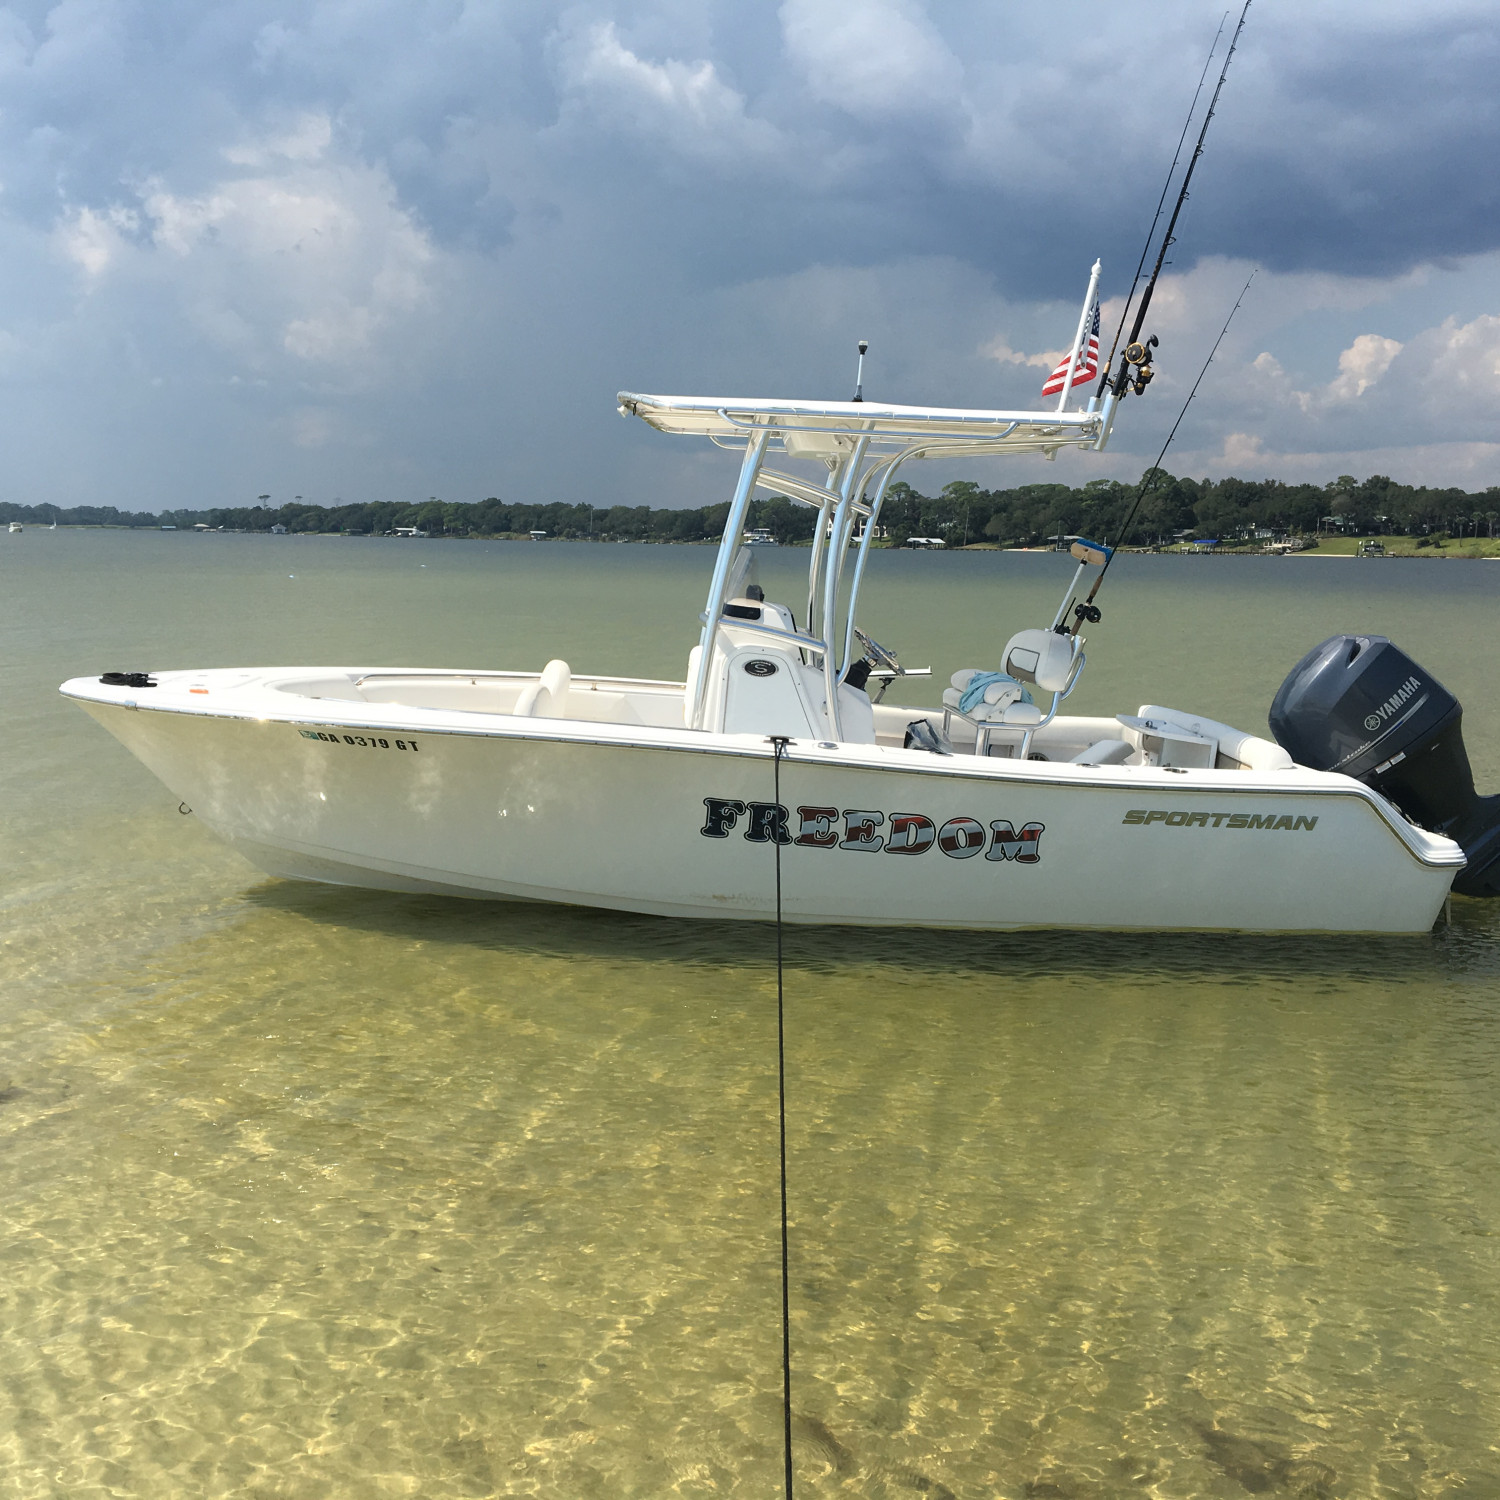 Title: Freedom at rest - On board their Sportsman Heritage 211 Center Console - Location: Fort Walton Beach, Florida. Participating in the Photo Contest #SportsmanNovember2017